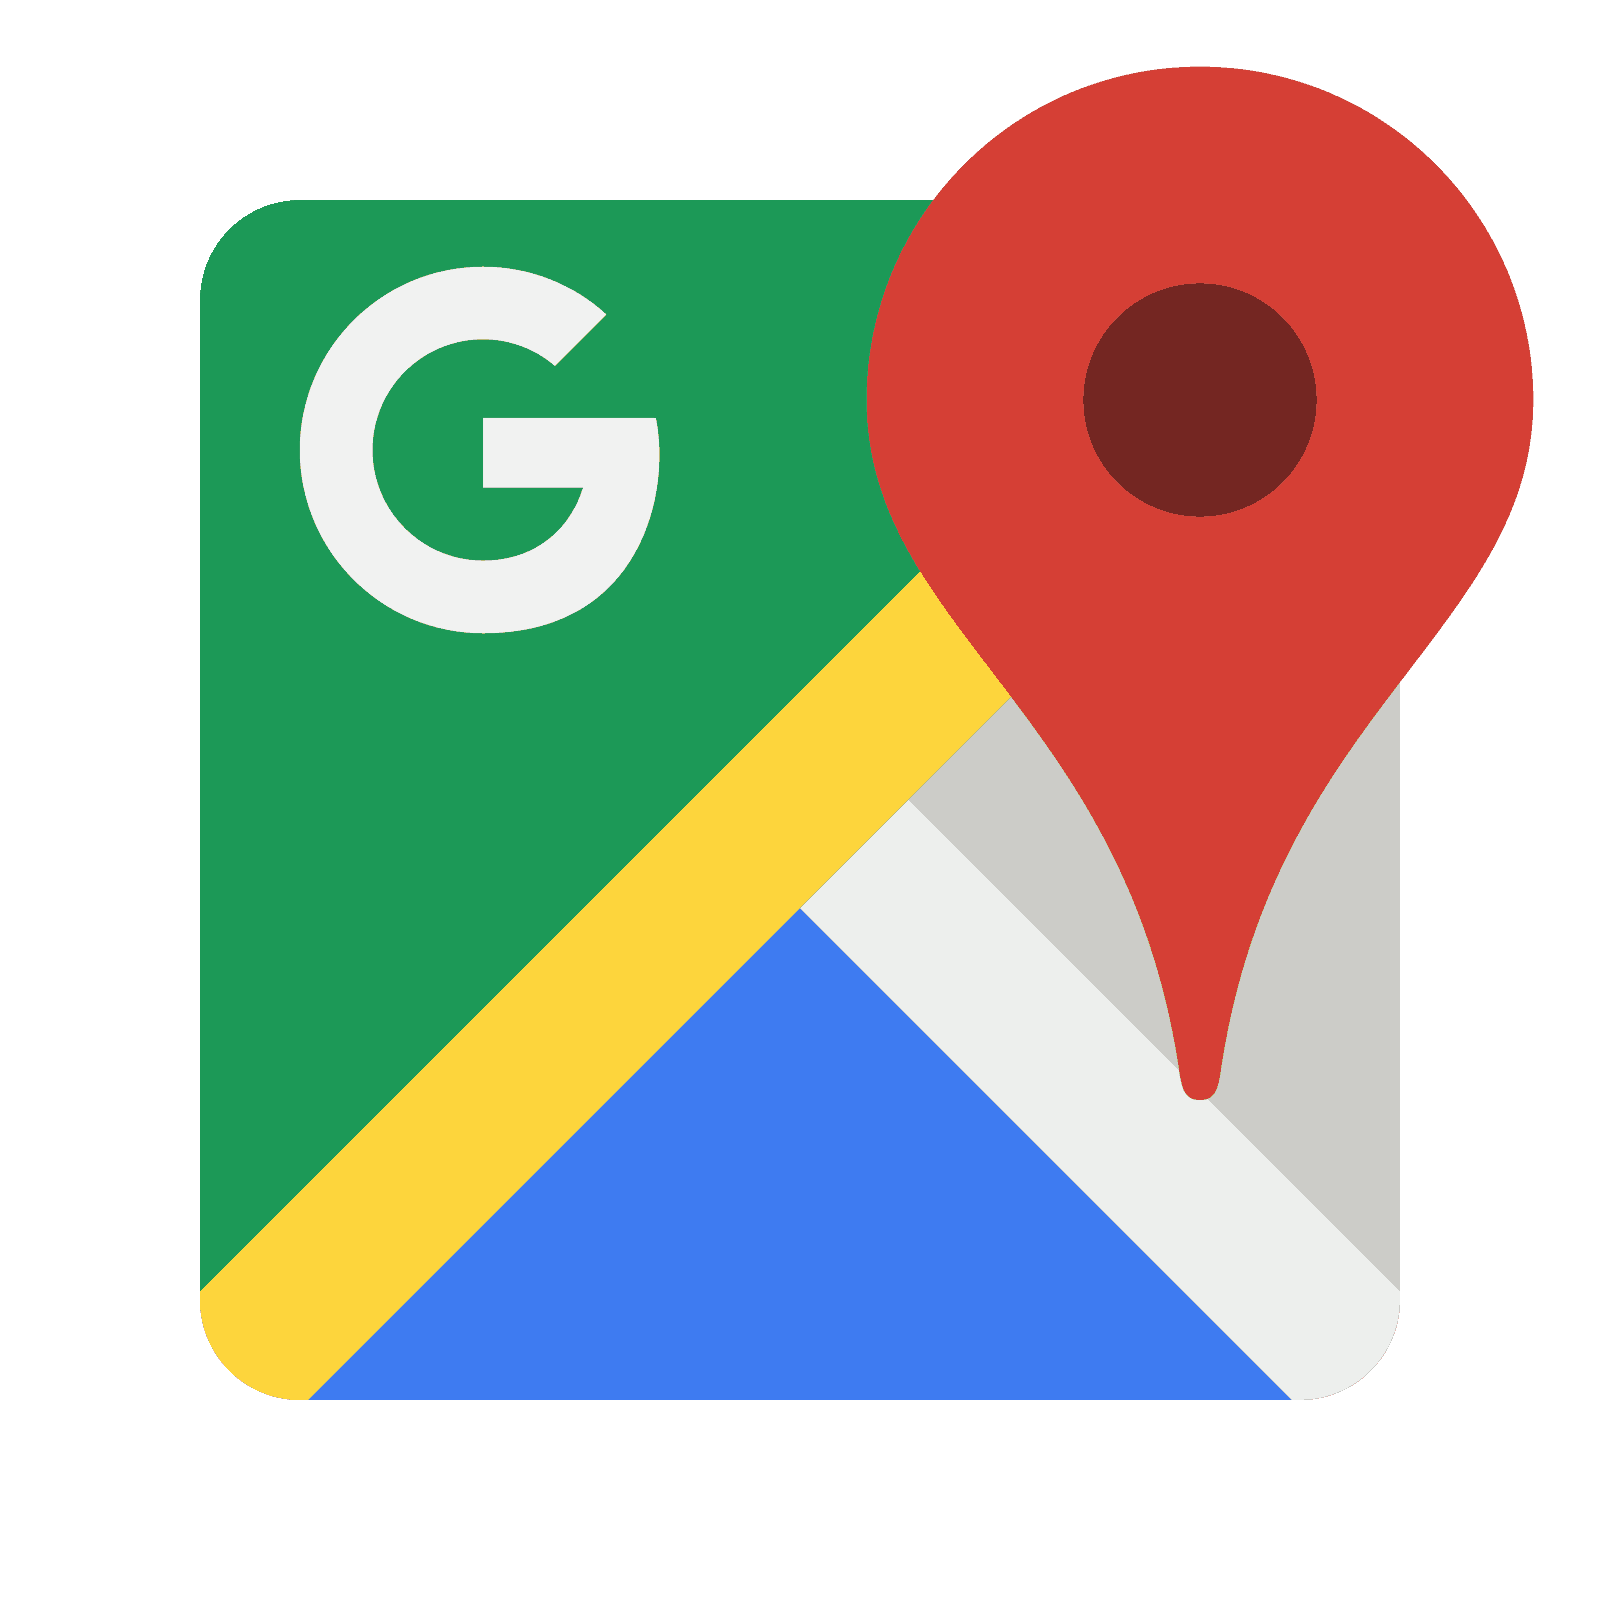 mgoogle maps with Google Maps on Google Maps furthermore 6118006780260280722 as well Coloring Pages as well 70493227 as well 43691158.